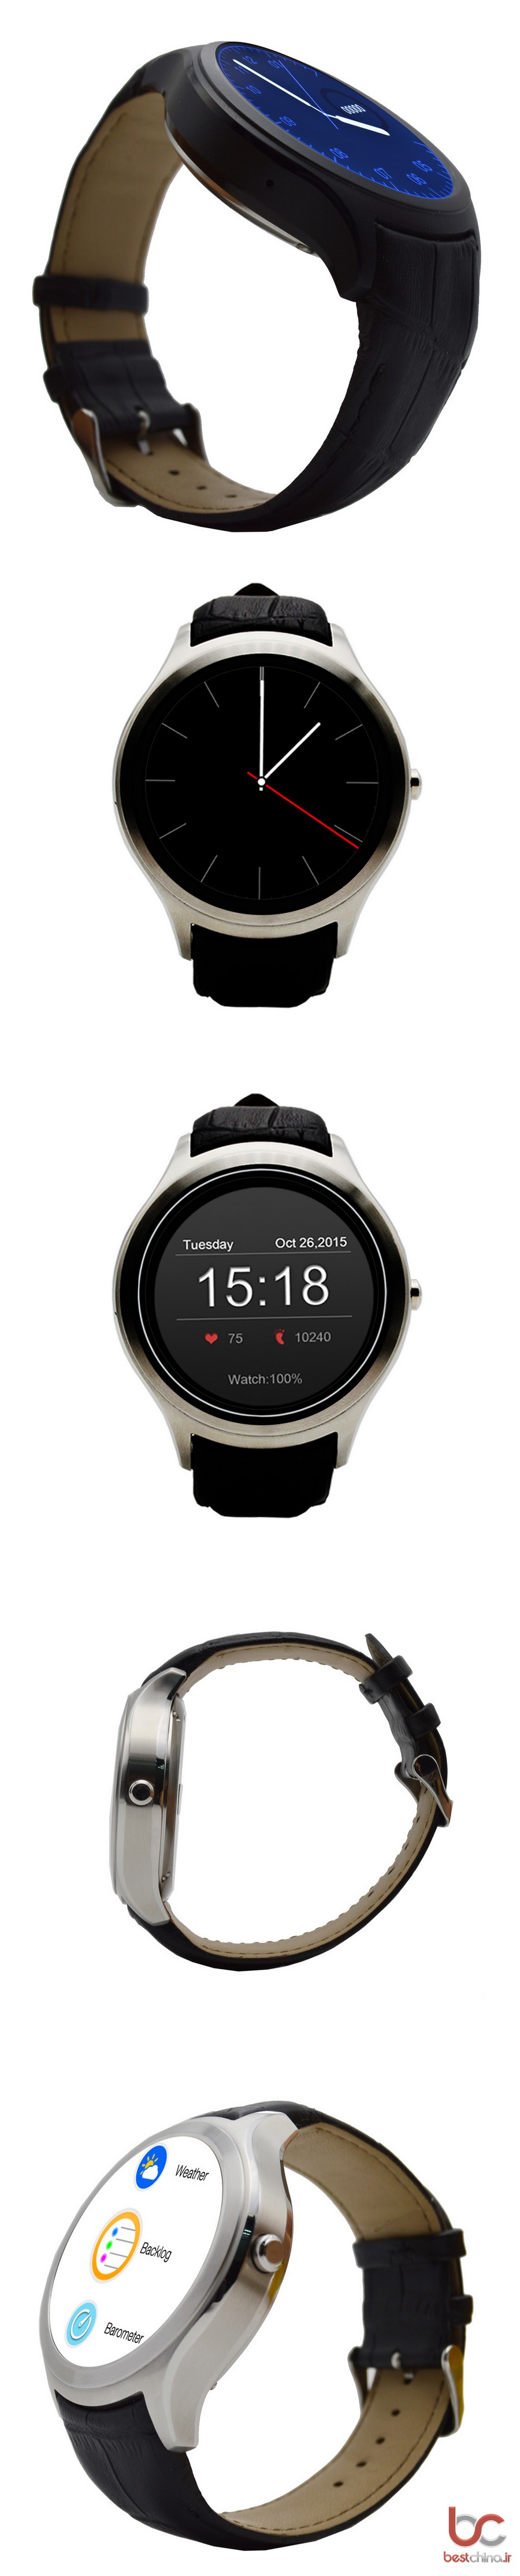 NO.1 D5 smartwatch (6)